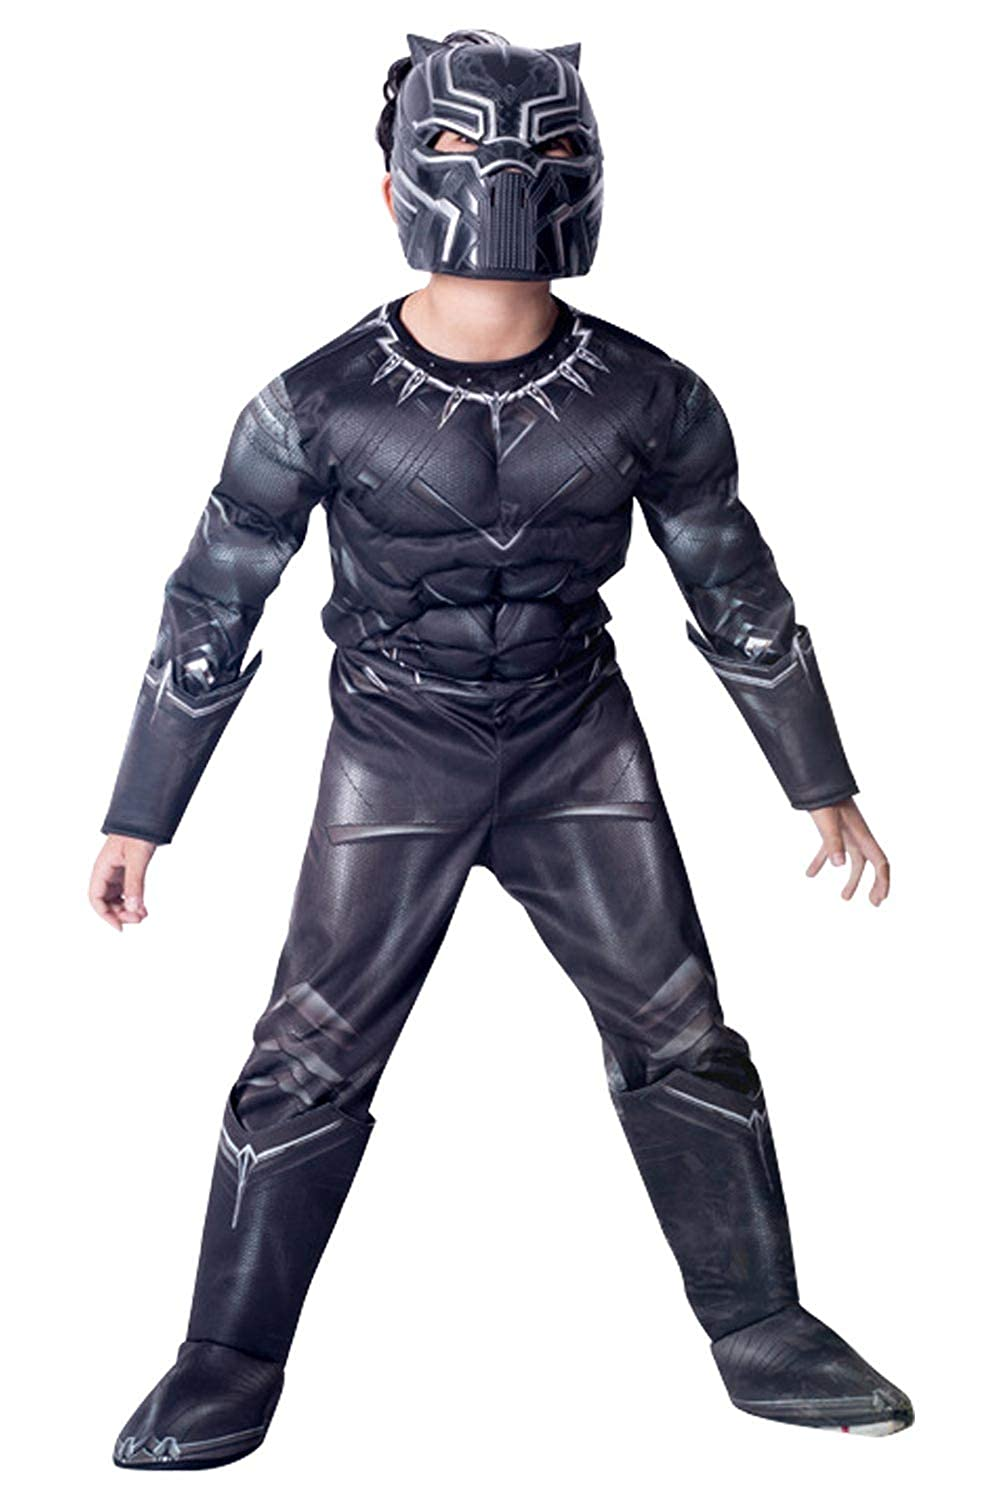 1ad592f3 Amazon.com: CHECKIN Kid Child Black Deluxe Muscle Chest Battle Suit 3D  Black Jumpsuit Bodysuit Halloween Cosplay Costume: Clothing